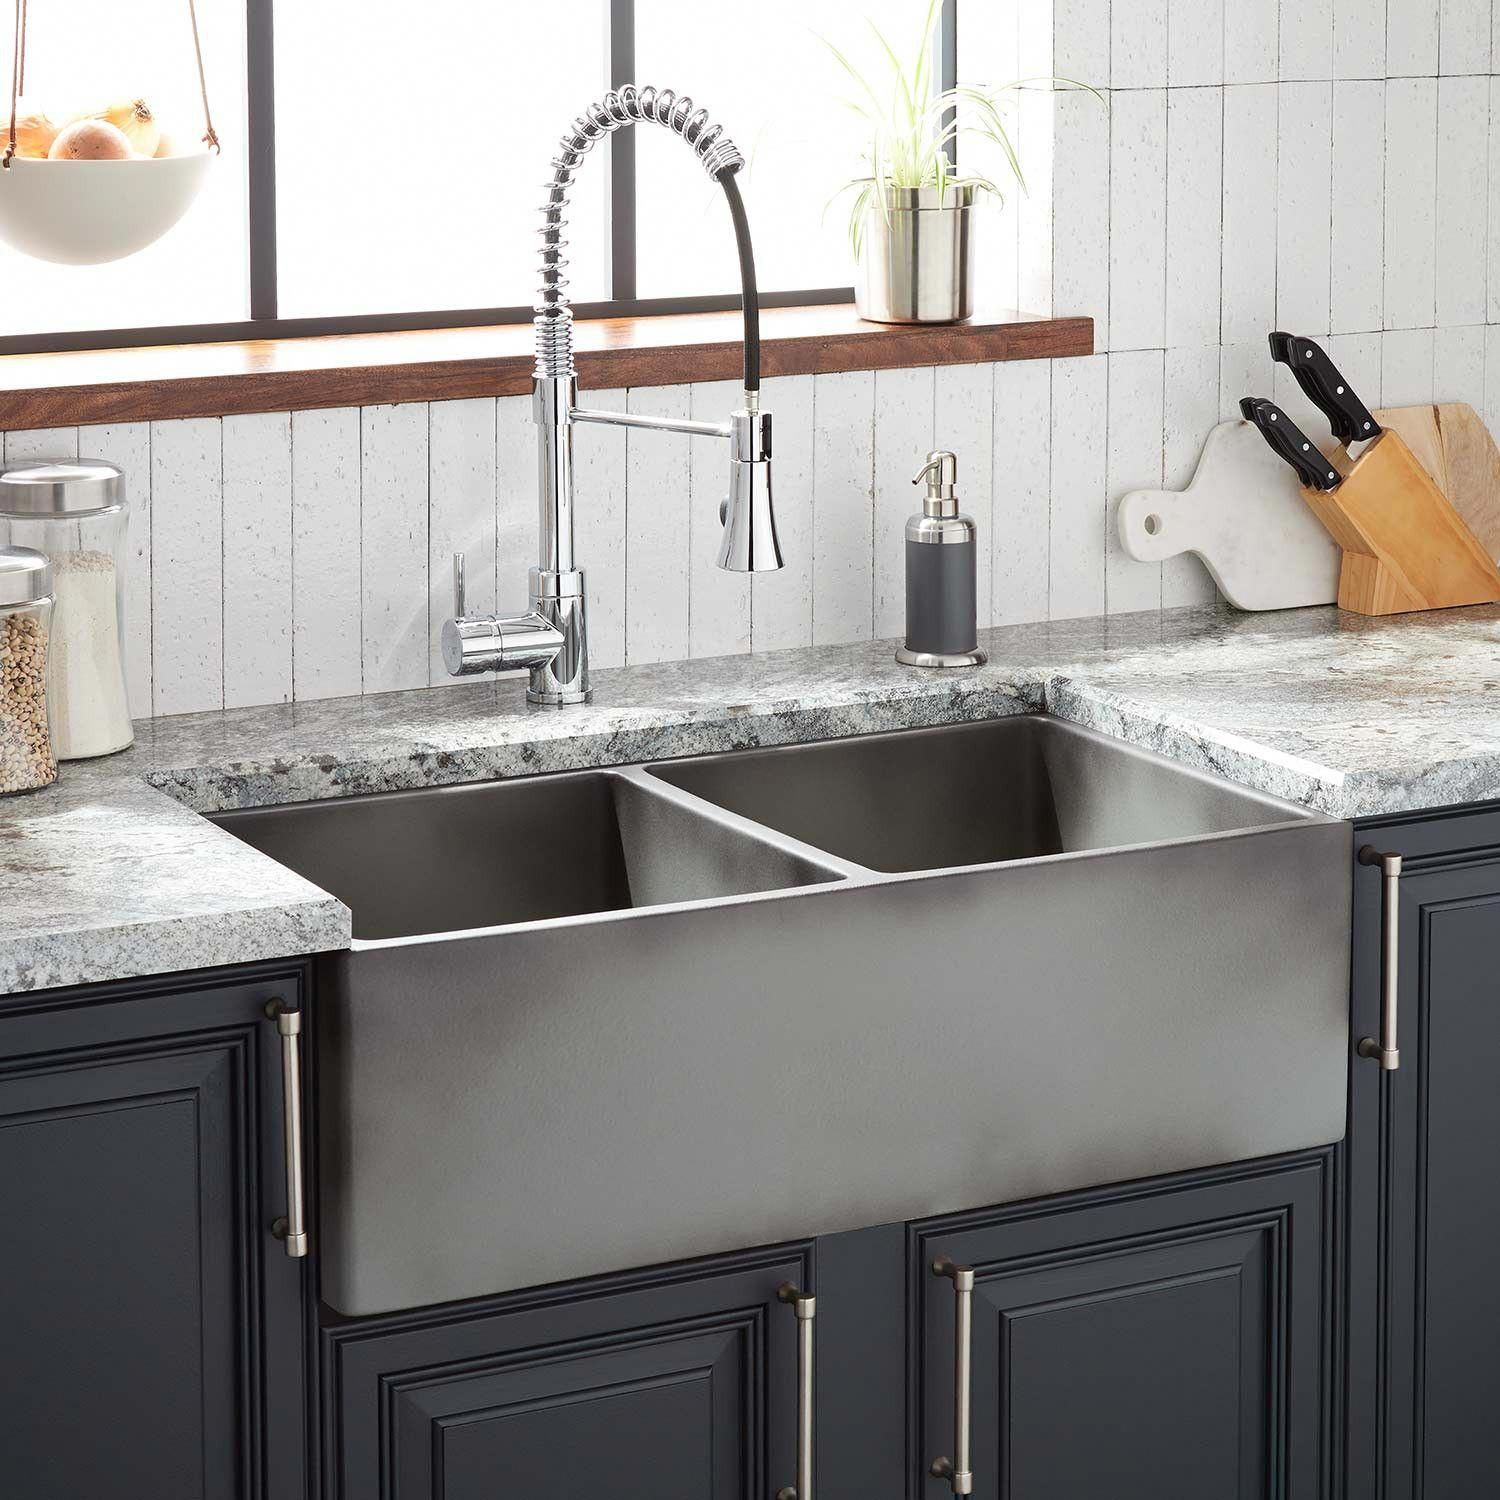 Decoration Selection Life In Purple Fireclay Farmhouse Sink Farmhouse Sink Kitchen Remodel